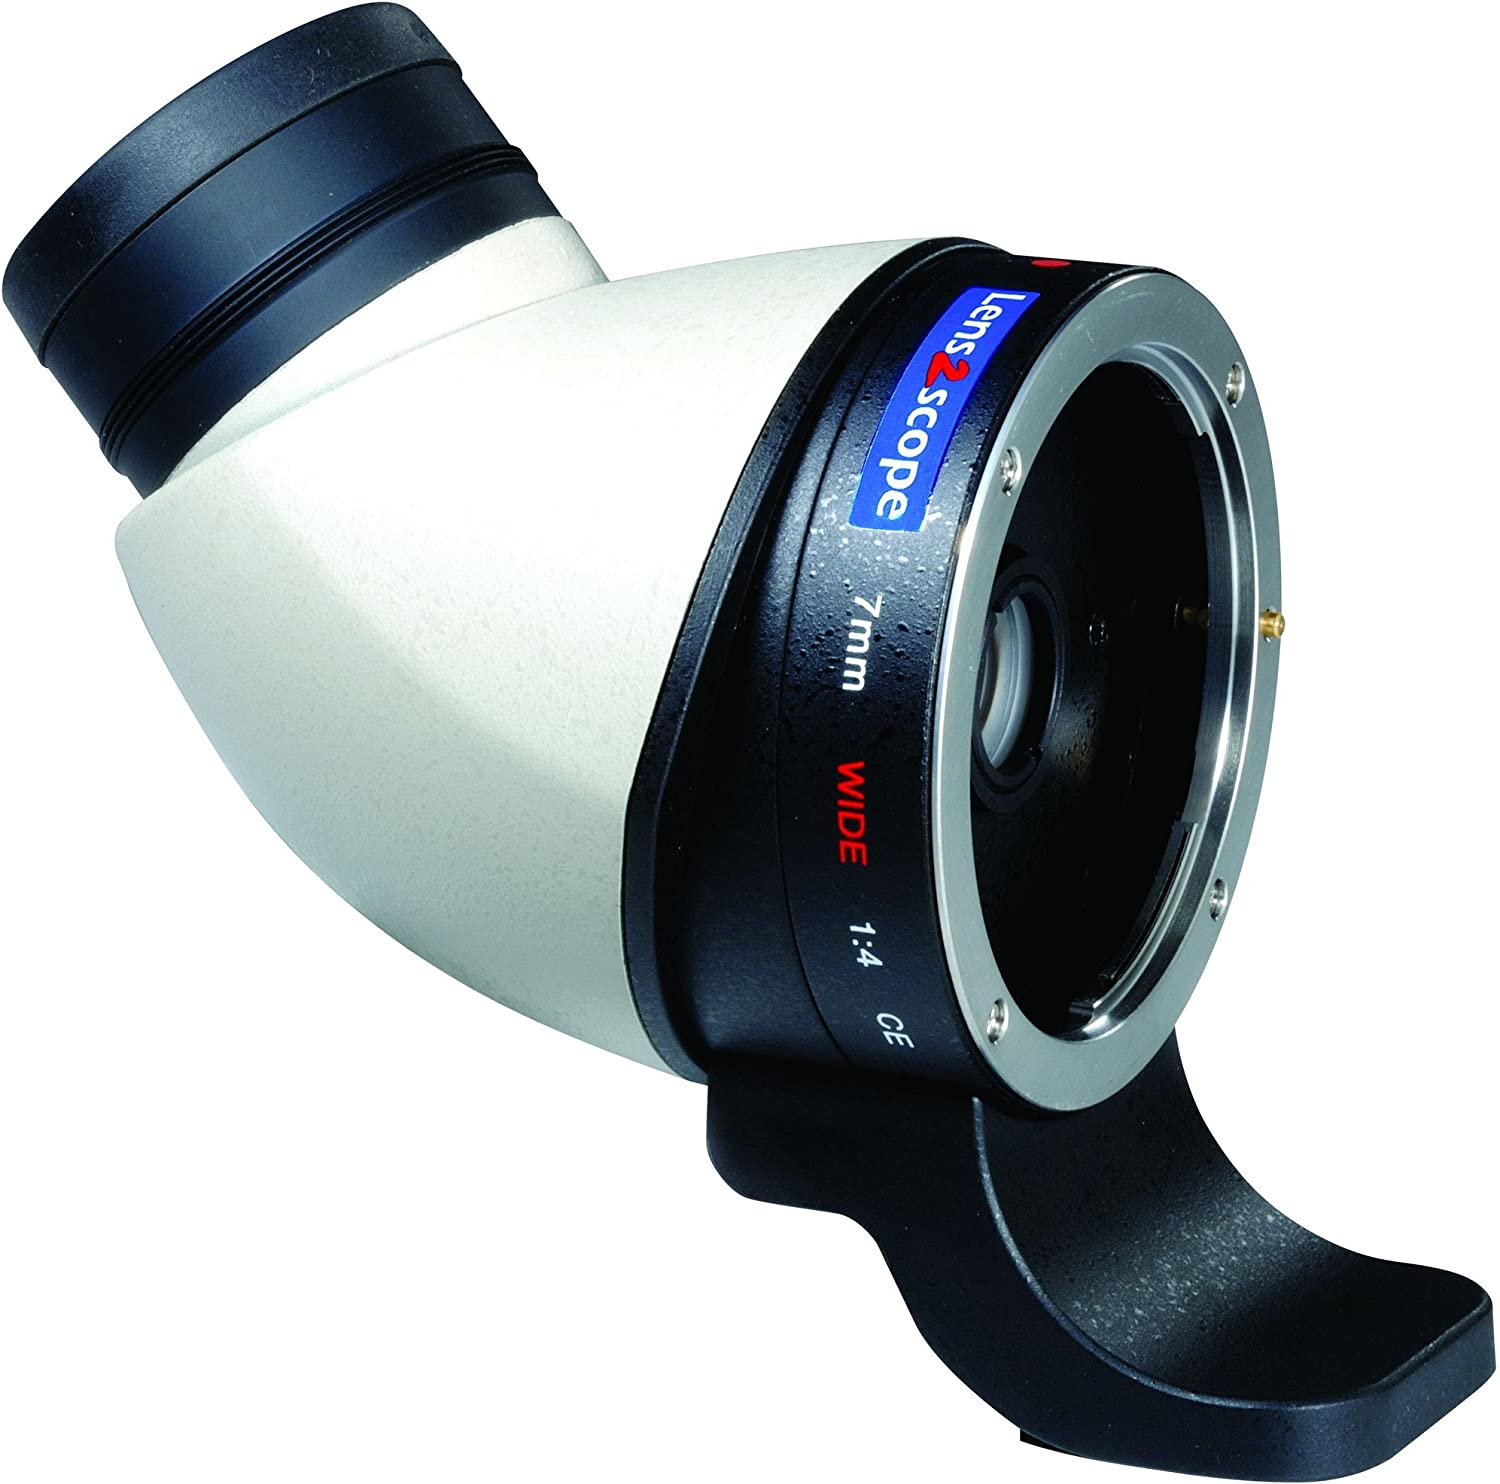 Fernglas Kenko Lens2scope Canon EOS Angle Weiss